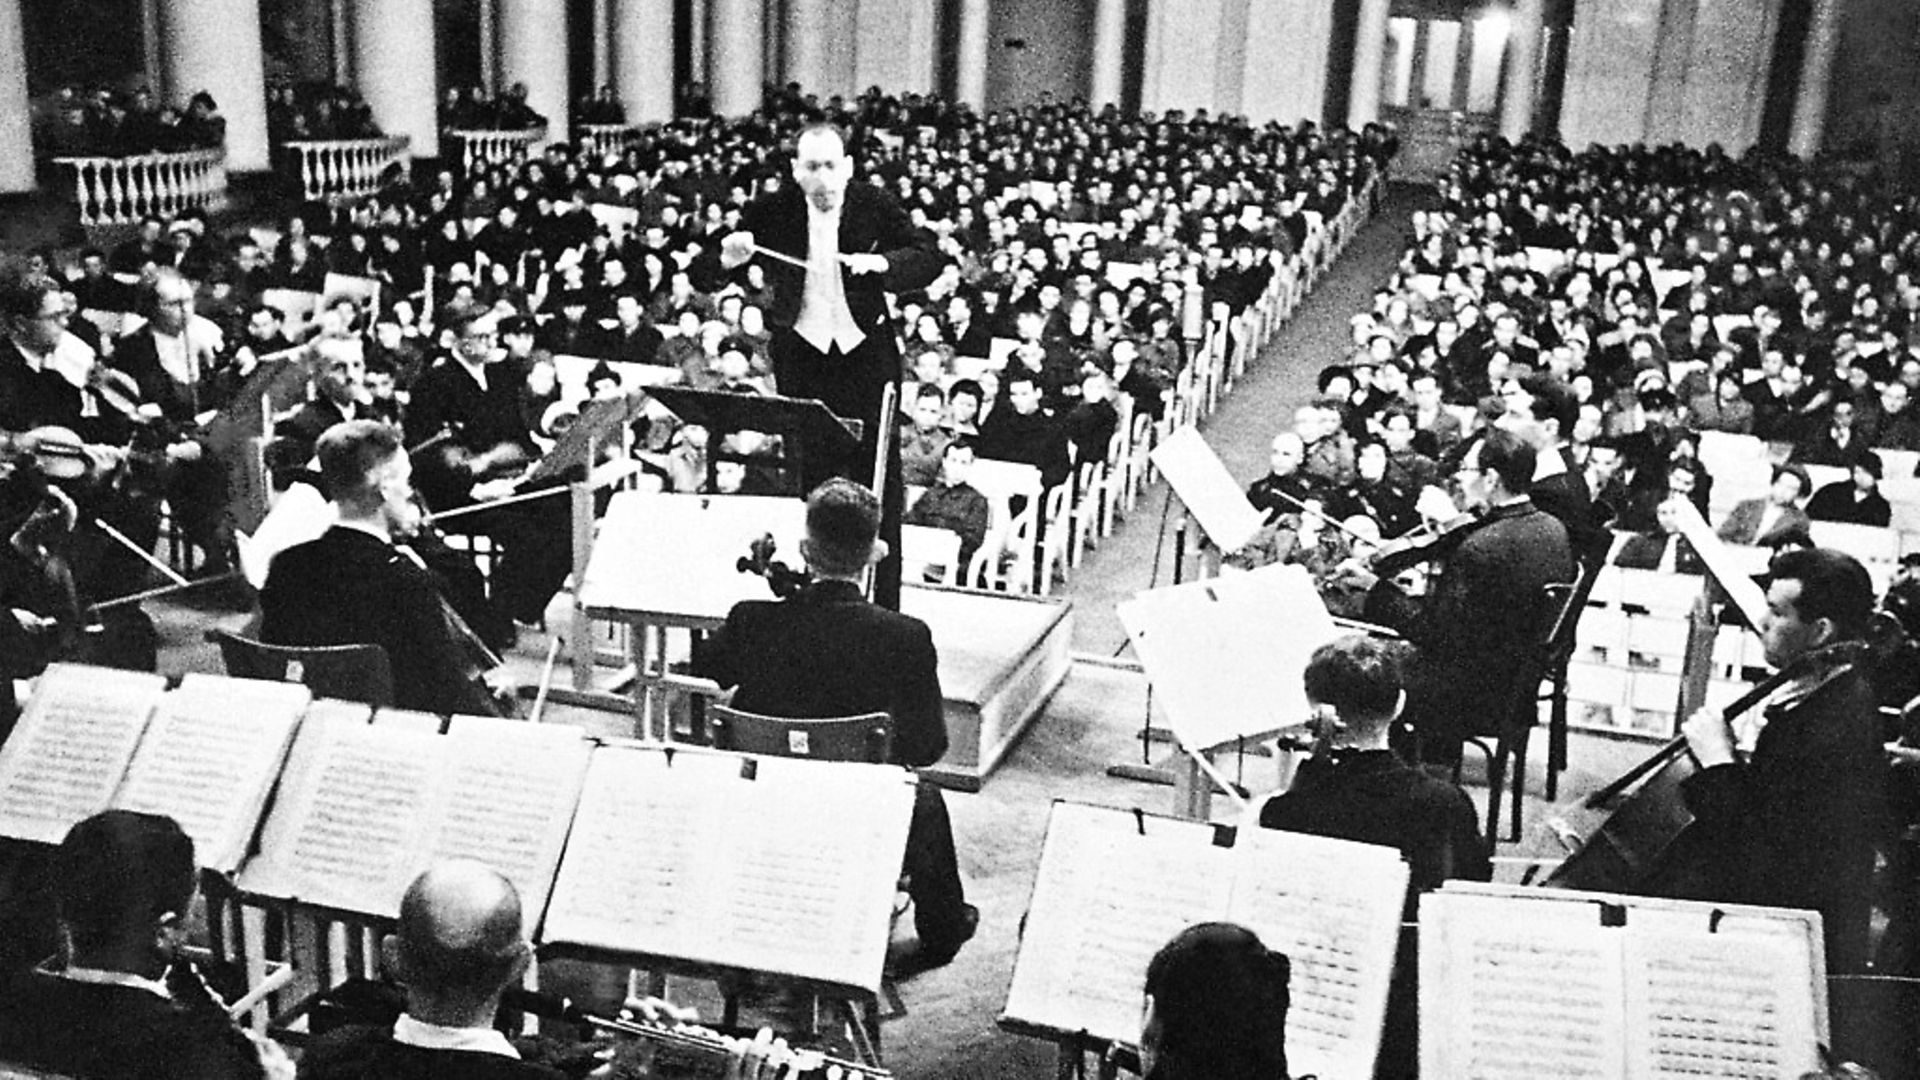 Conductor Karl Eliasberg leading the Saint Petersburg Philharmonic Orchestra as they perform Seventh Symphony by Dmitri Shostakovich during the siege of Leningrad. Picture: TASS via Getty Images - Credit: TASS via Getty Images